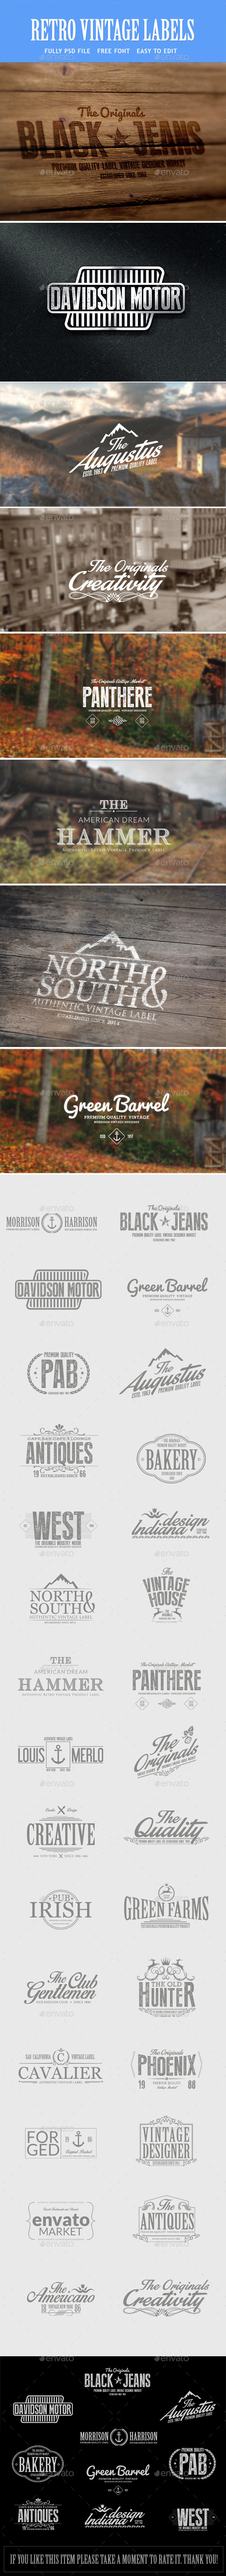 Vintage Retro Badges - Bundle - Badges & Stickers Web Elements